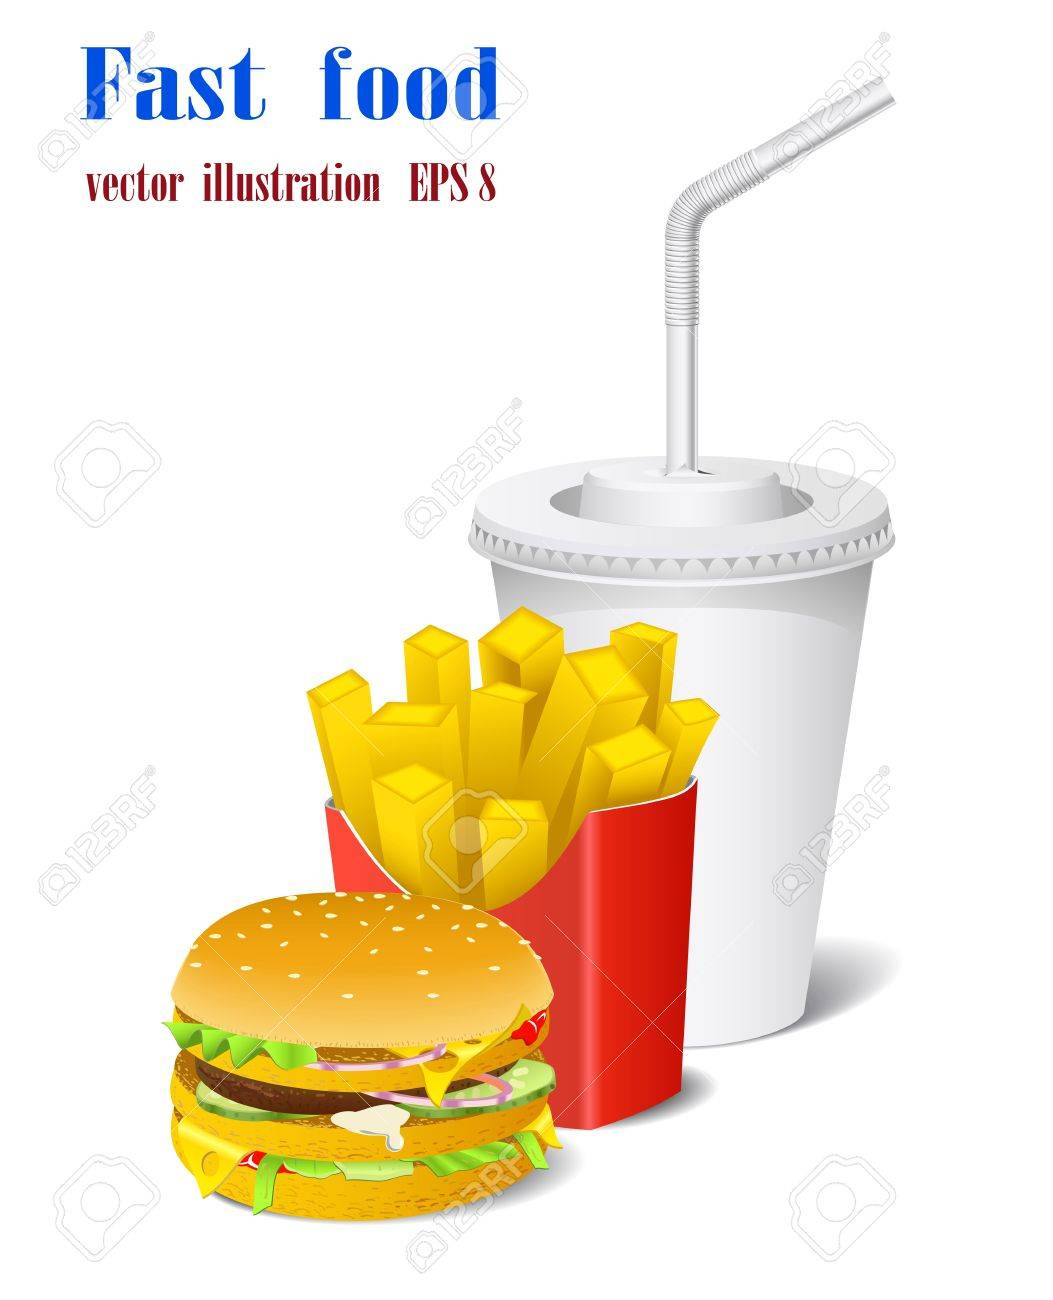 Sandwich, potato and a cup are shown in the picture - 9390103